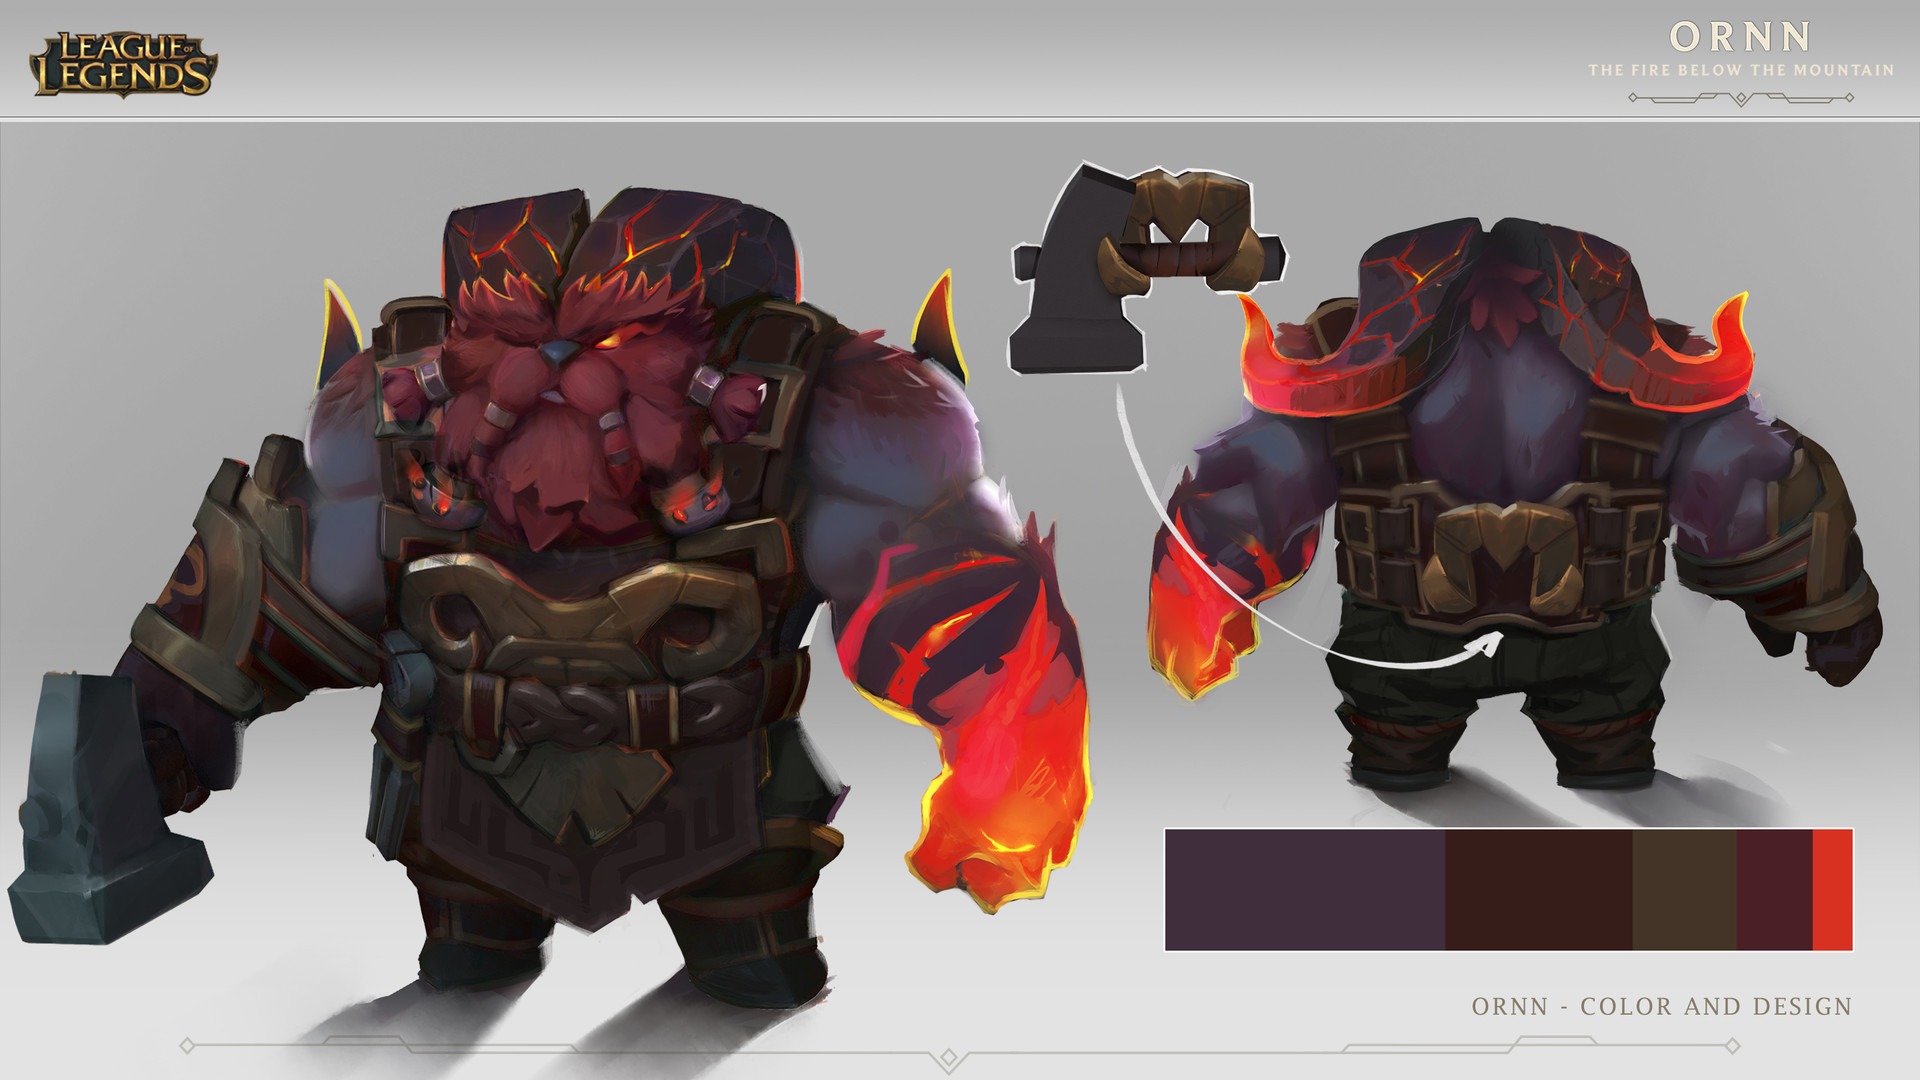 Daniel orive ornn coloranddesign